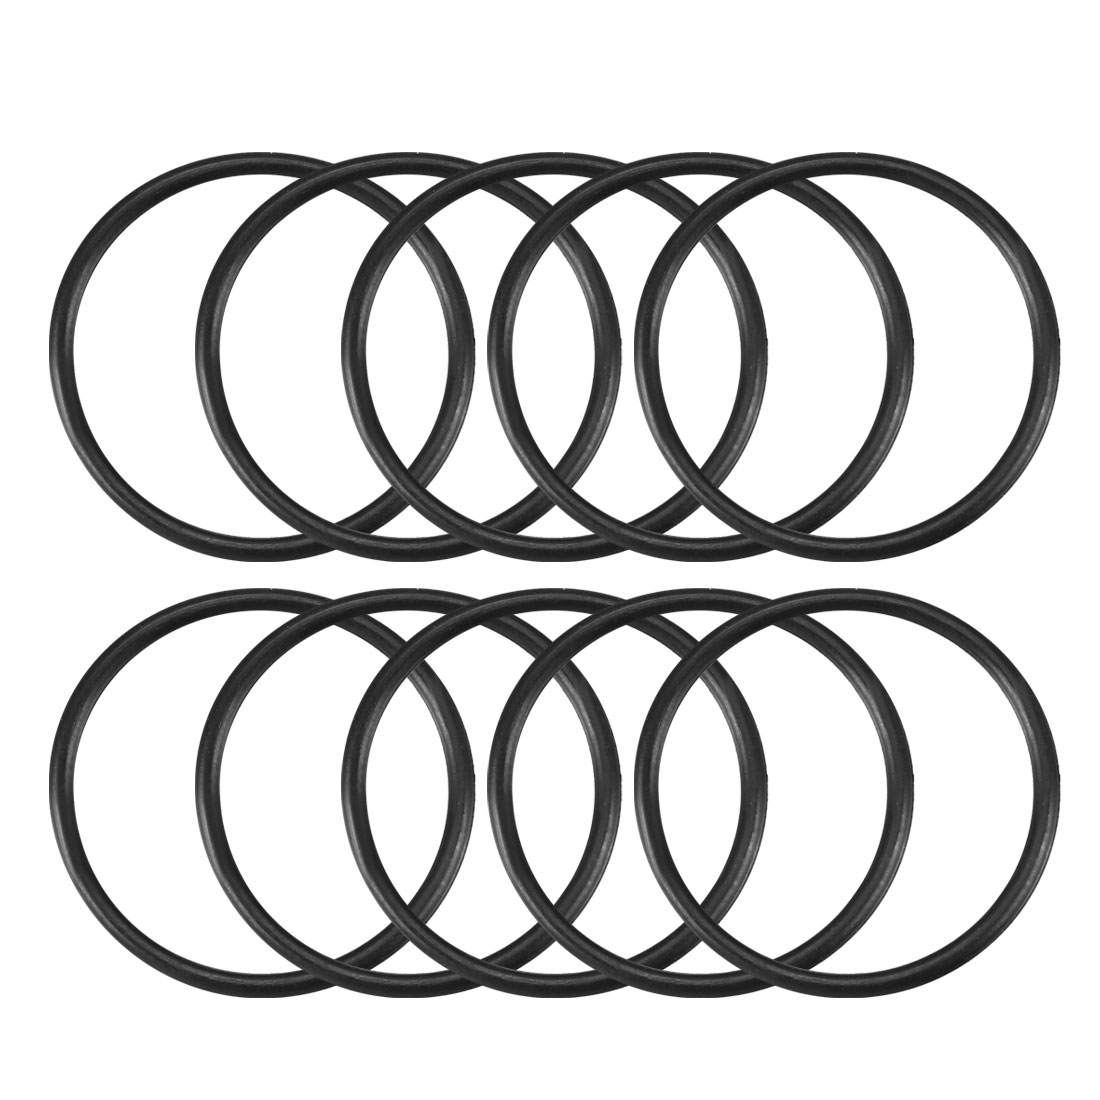 10 Pcs Black Rubber Oil Seal O Ring Gasket Washer 24mm x 21mm x 1.5mm